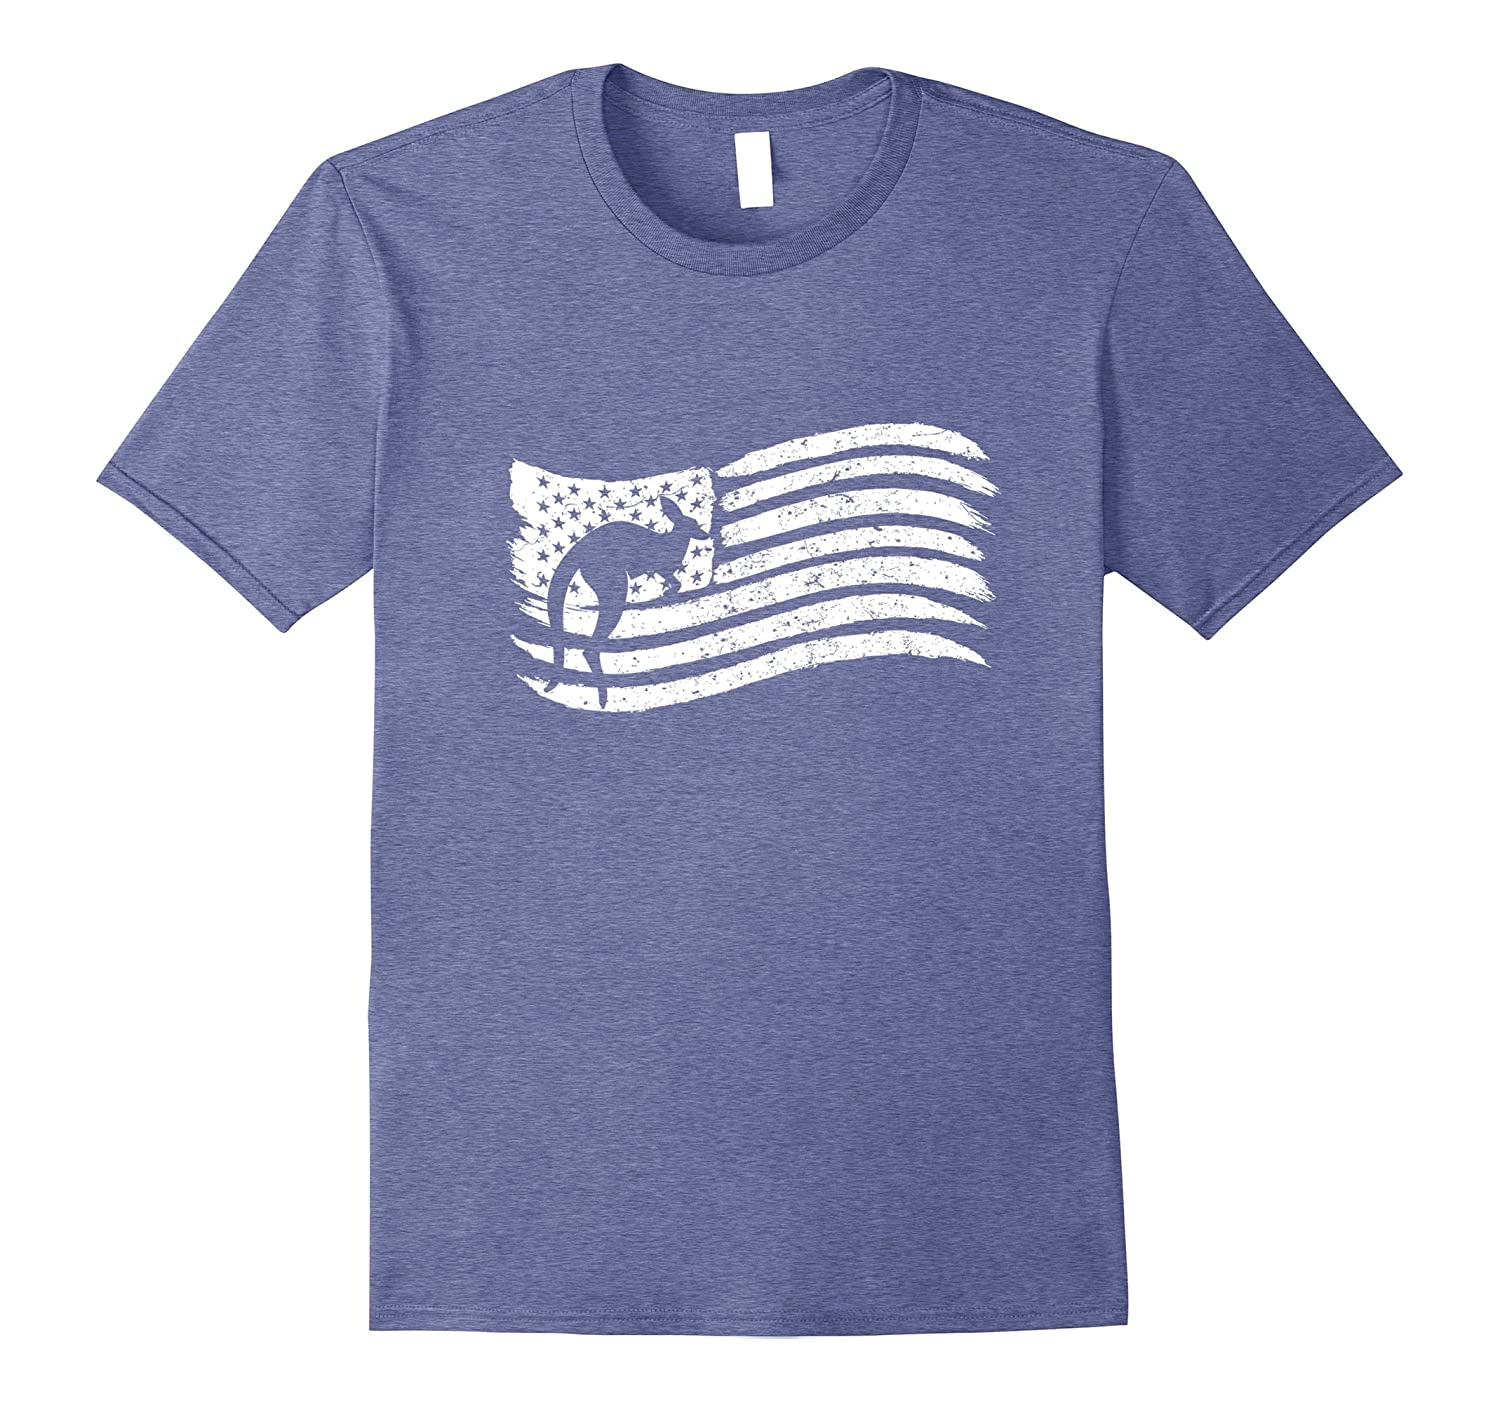 American Flag T-Shirt With Kangaroo Vintage Look-AZP